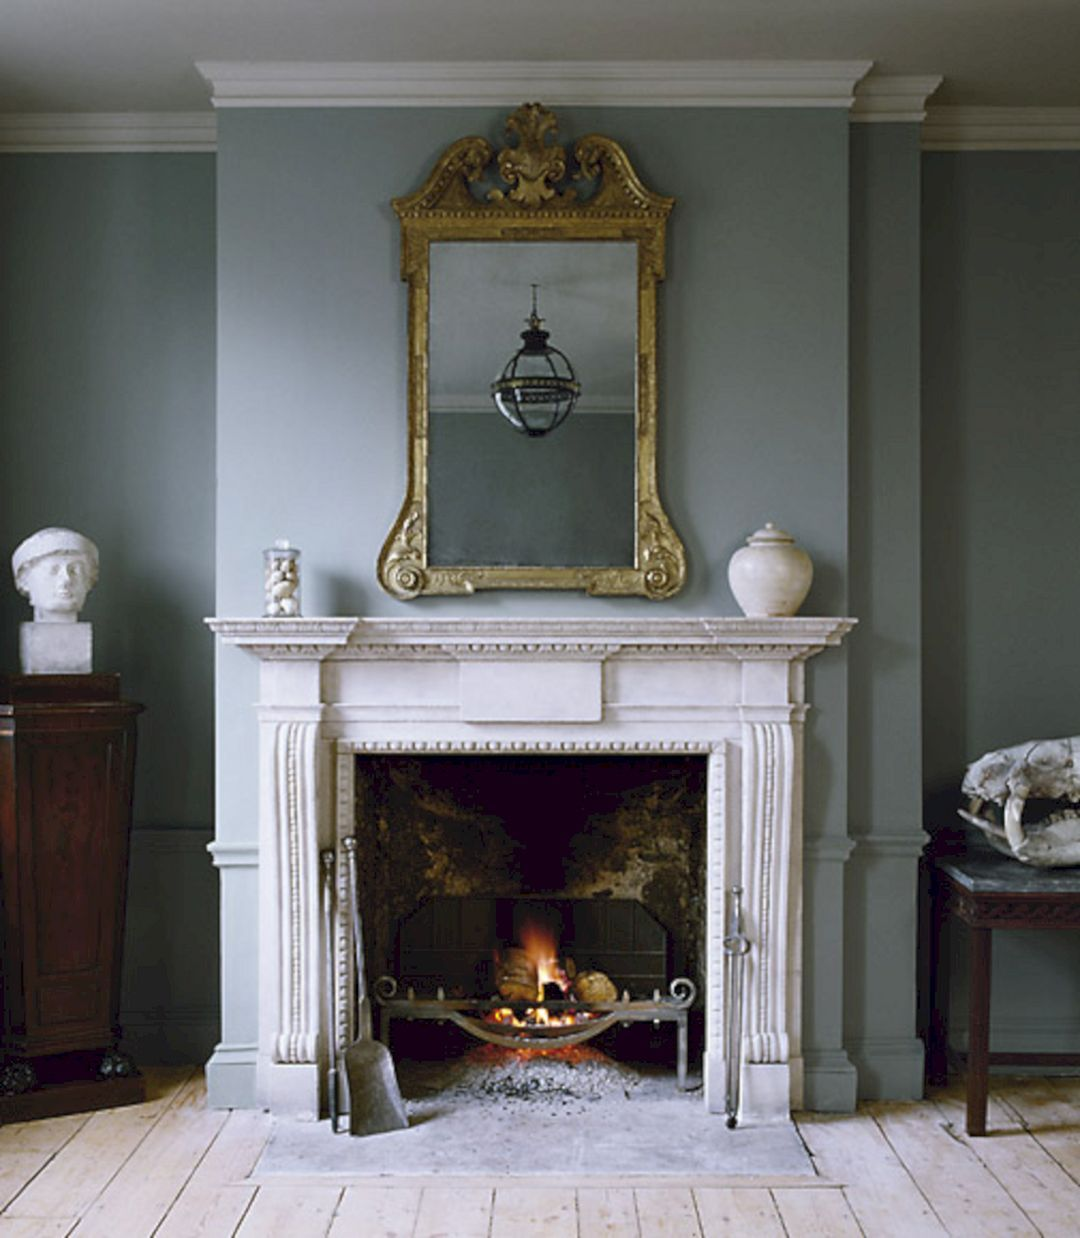 Antique Living Room With Fireplace Antique Living Room With Fireplace Design Ideas And Photos In 2020 Vintage Fireplace Fireplace Design Georgian Fireplaces